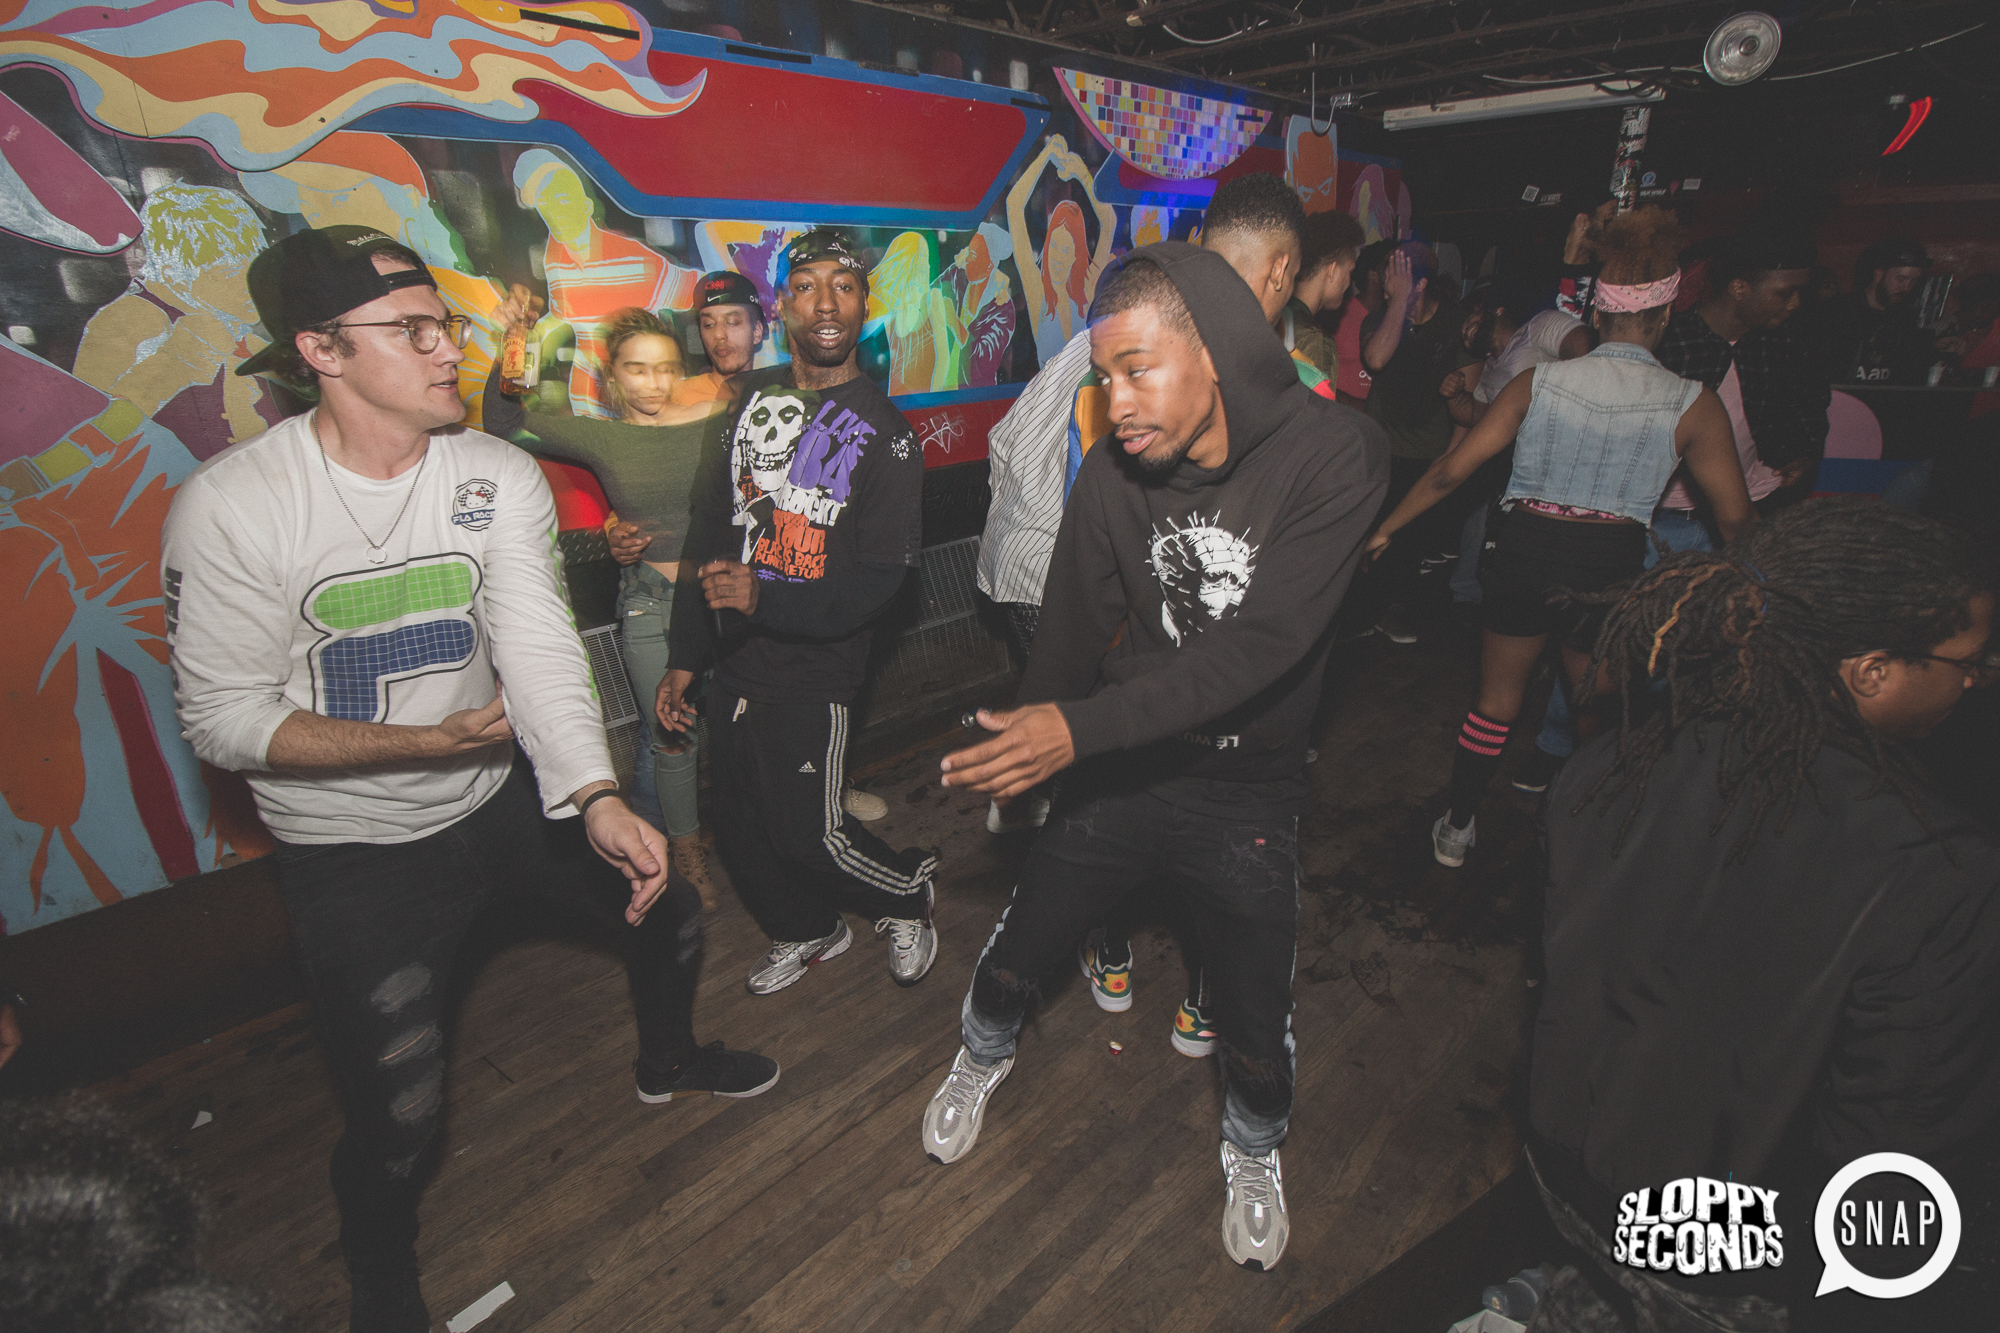 119Sloppy Seconds March2019 oh snap kid atlanta.JPG